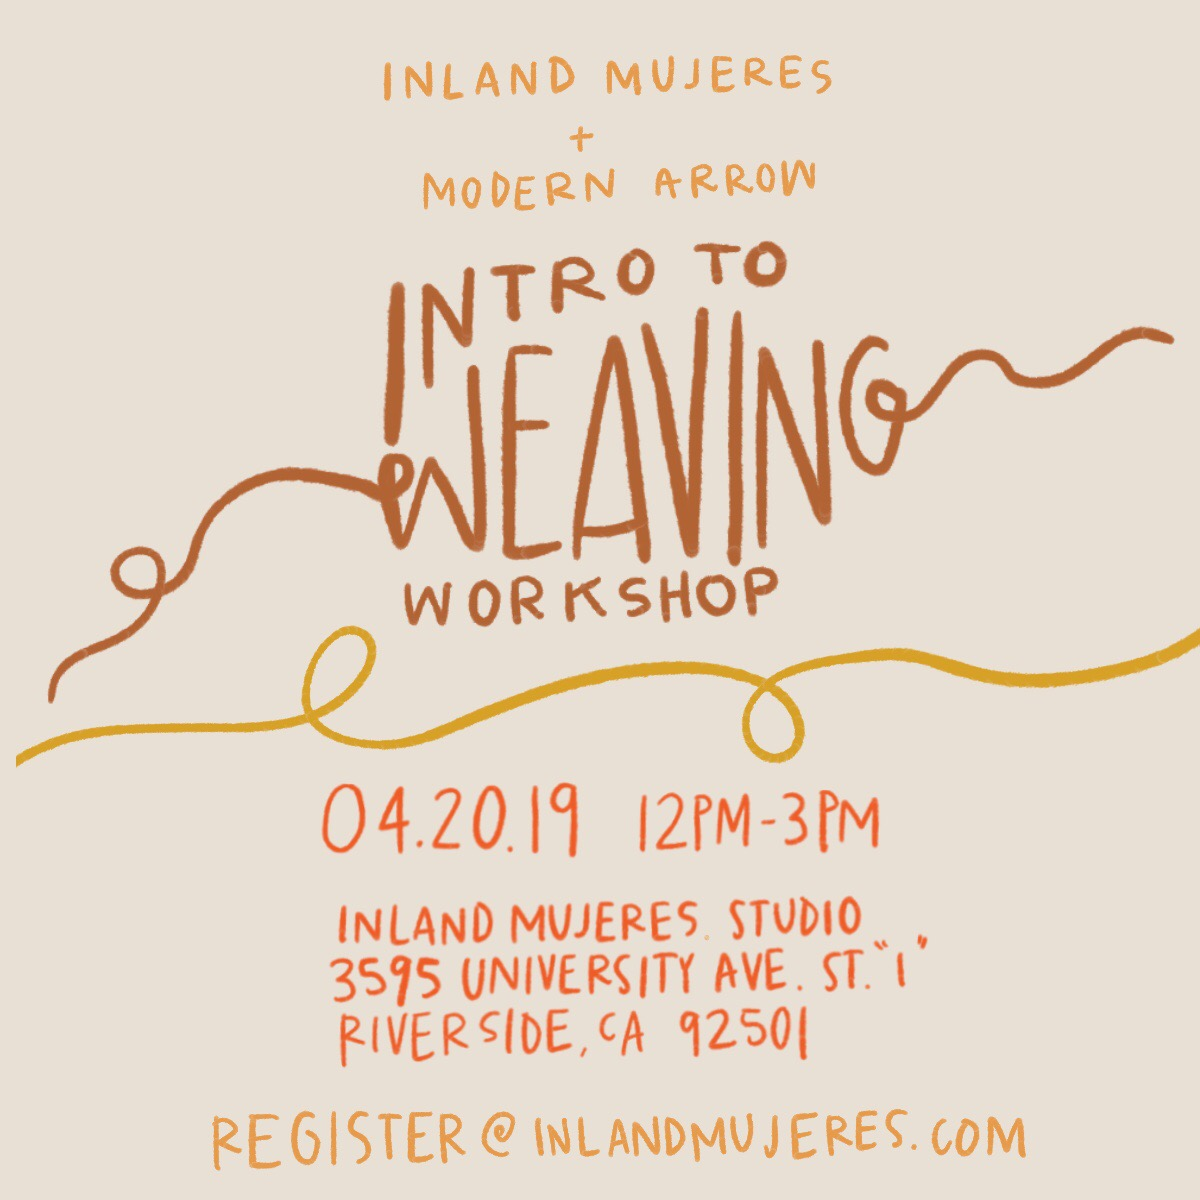 Join  Inland Mujeres  + fiber artist Lorena Zaragoza, founder of Modern Arrow for an intro to weaving workshop on  April 20th , 2019 from  12-3pm .  In this workshop, you'll learn essential techniques for creating a woven wall hanging. You will begin by choosing a color scheme of fibers, then move into foundational warping of a loom. Following this, you will learn how to create basic knots used for creating fringe. Then move into basic weaving including how to experiment with different fibers while utilizing various textures. Lastly, you will complete your weaving, remove it from the loom and learn how to tie it off to be attached to a wooden dowel for hanging.  Register   here